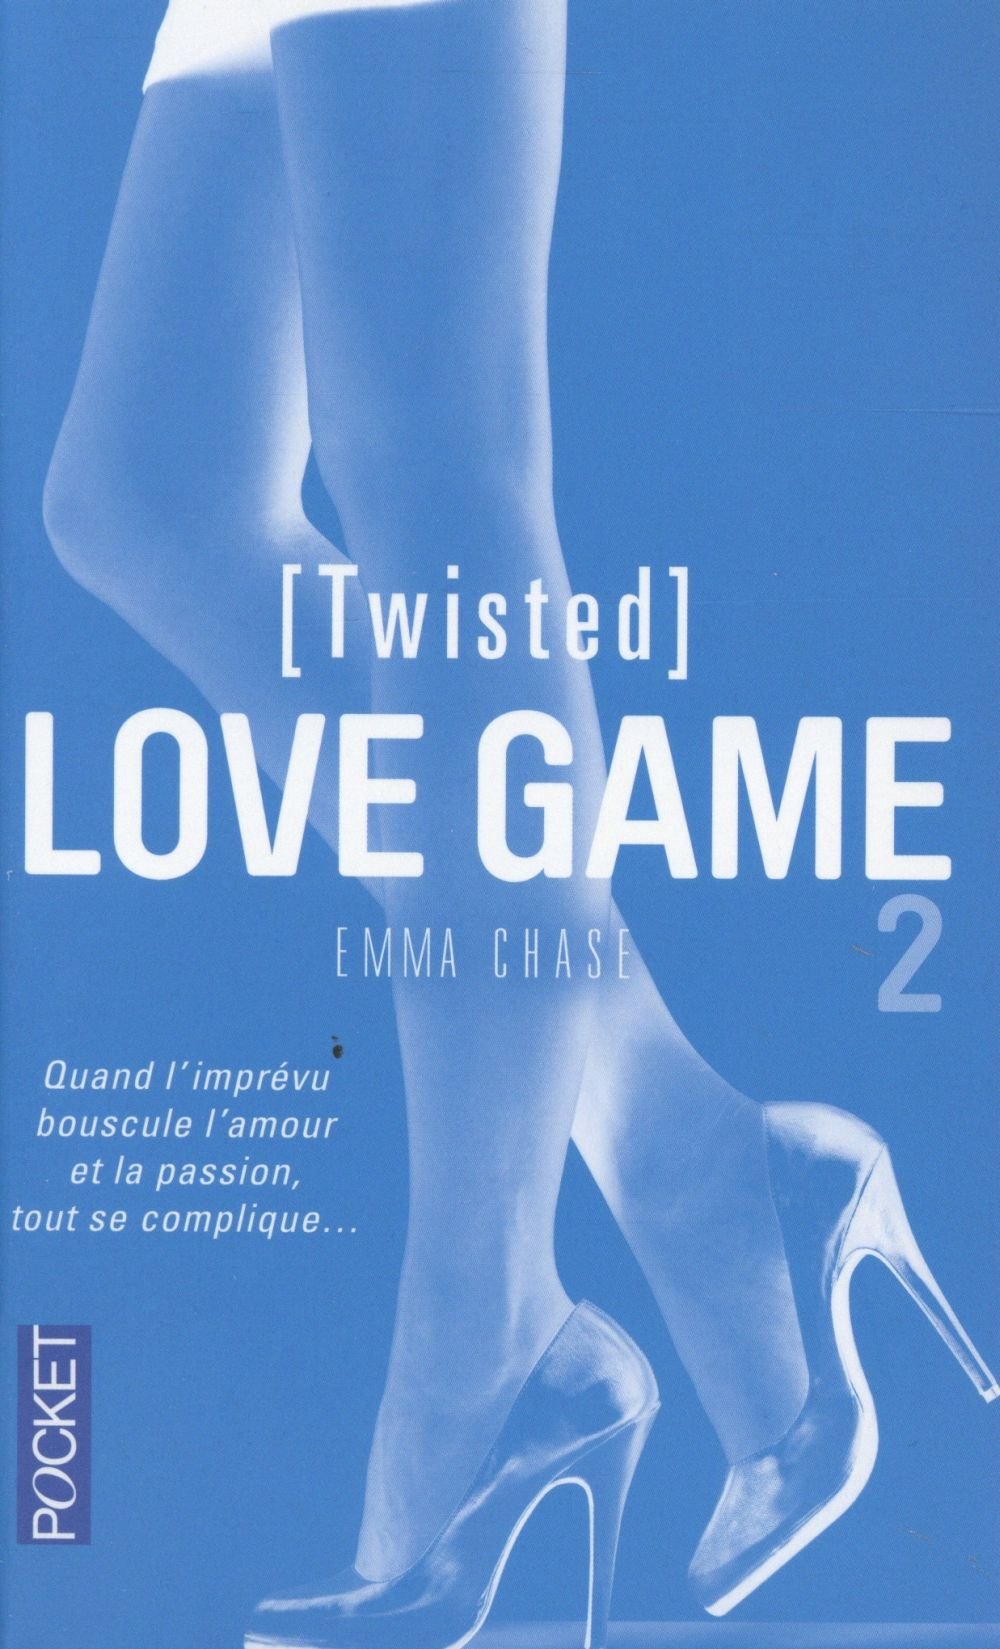 Chase Emma - LOVE GAME - TOME 2 (TWISTED) - VOLUME 02